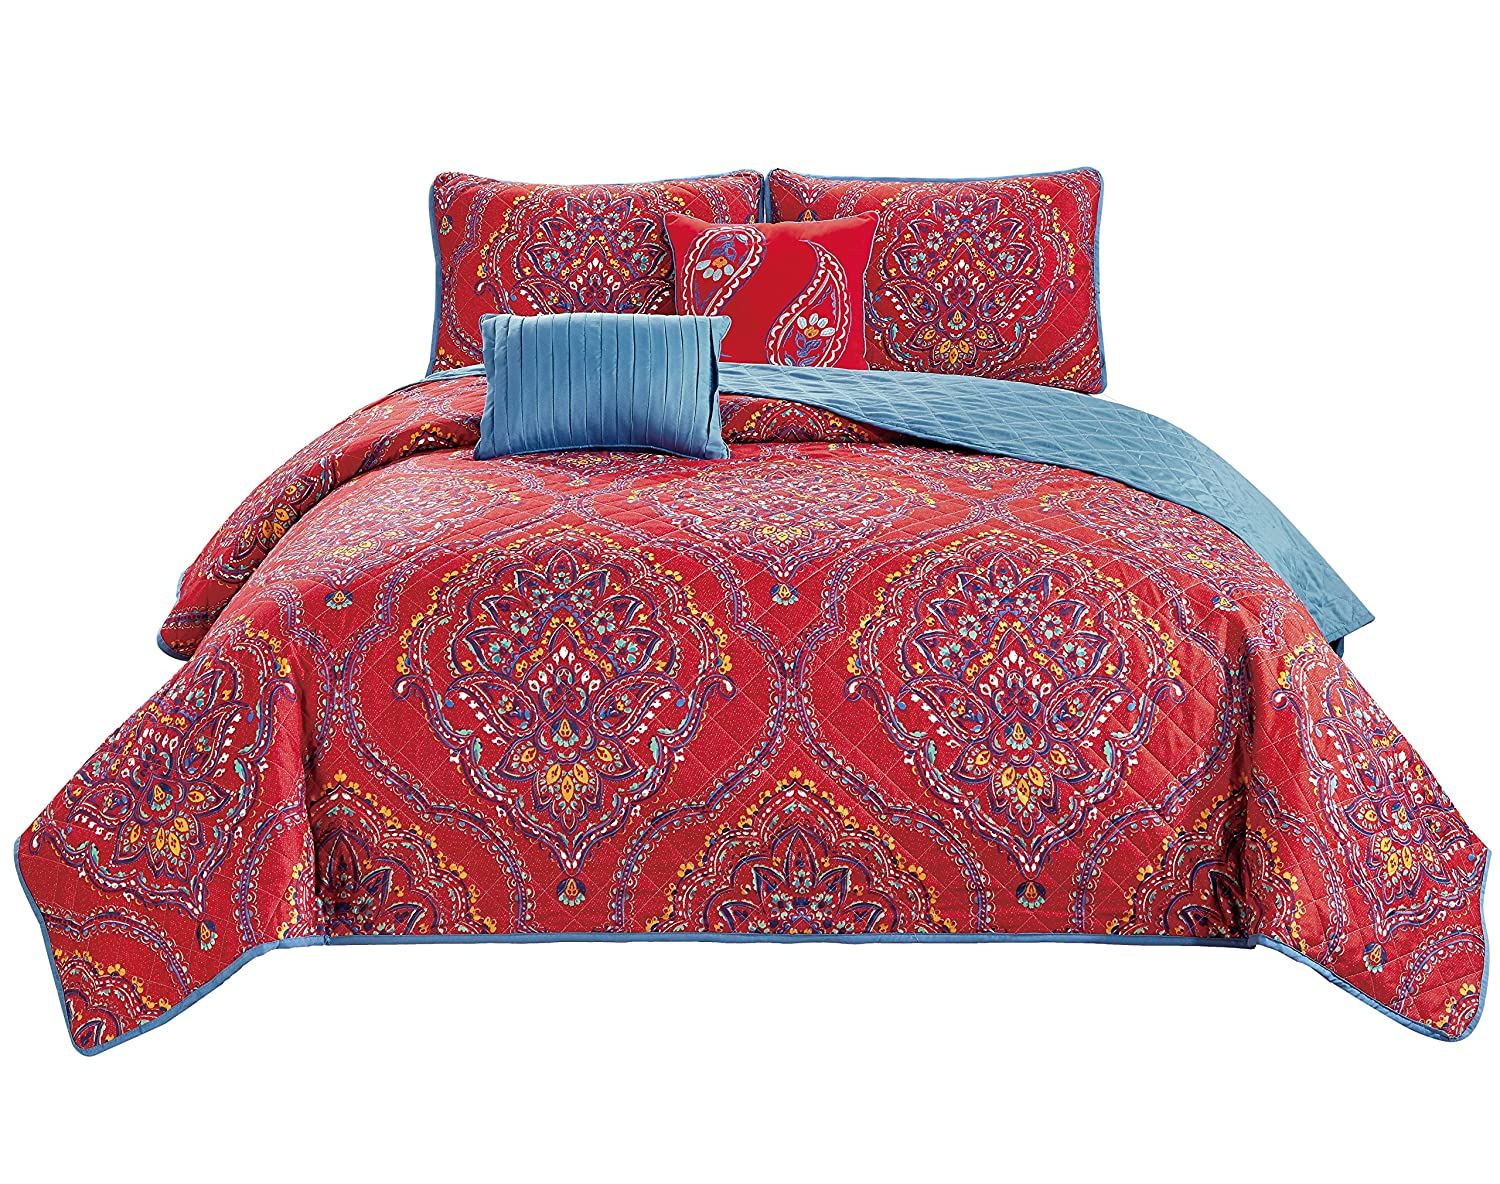 King RT Designers Collection Jayna 5-Piece Quilt Set Red//Blue//Yellow//White